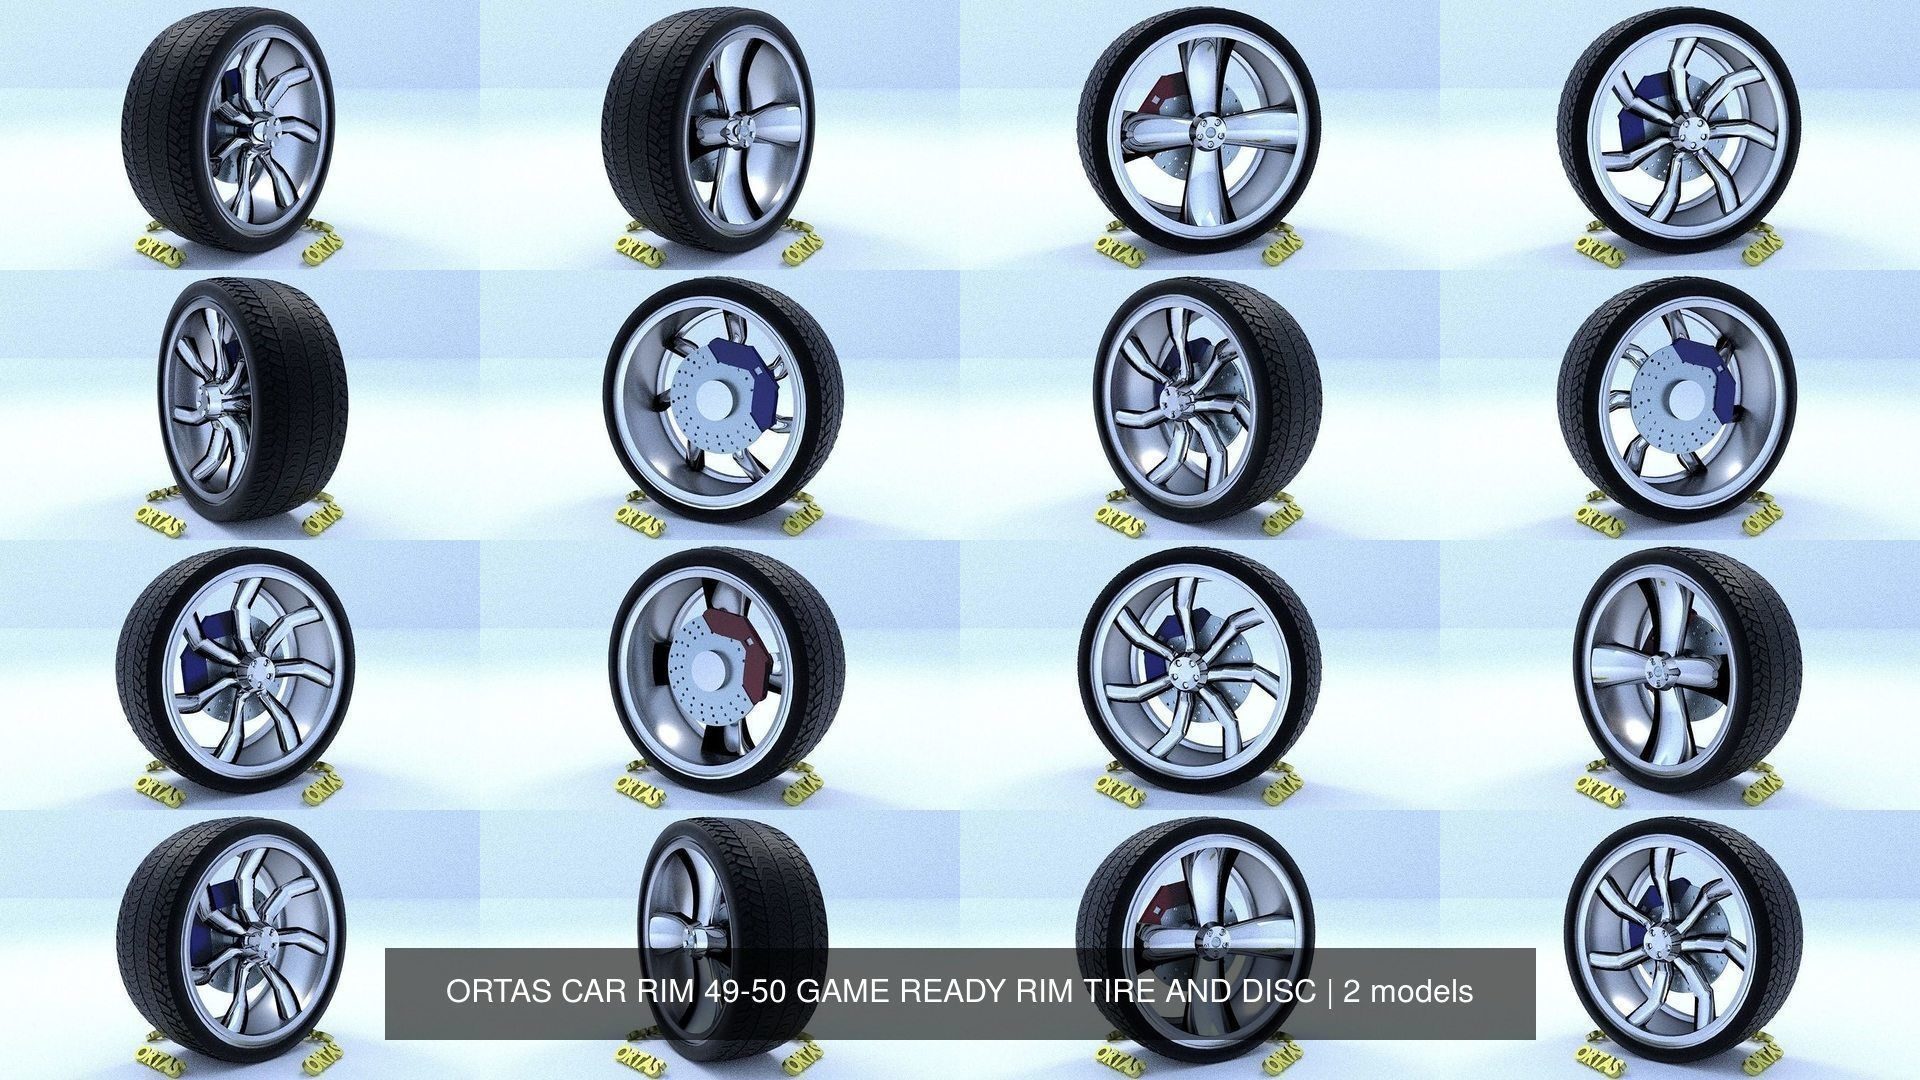 ORTAS CAR RIM 49-50 GAME READY RIM TIRE AND DISC